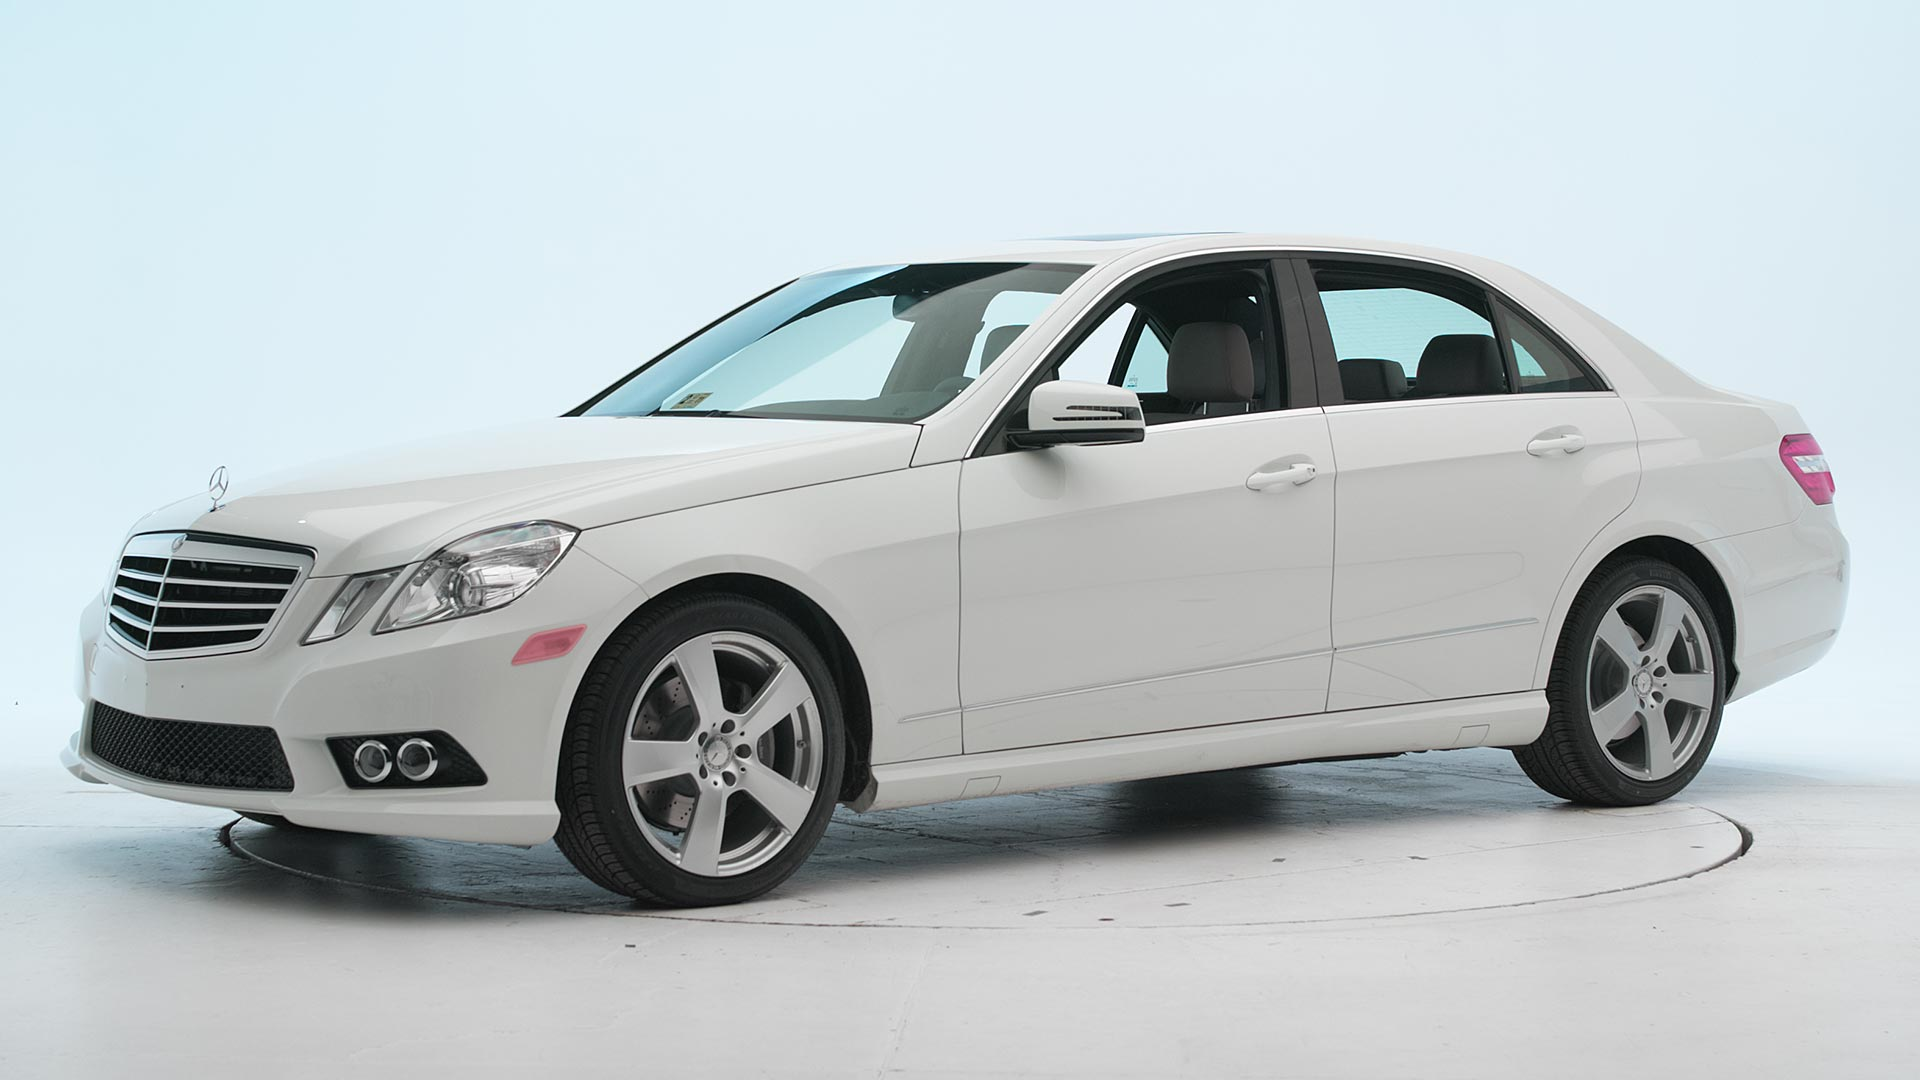 2010 Mercedes-Benz E-Class 4-door sedan